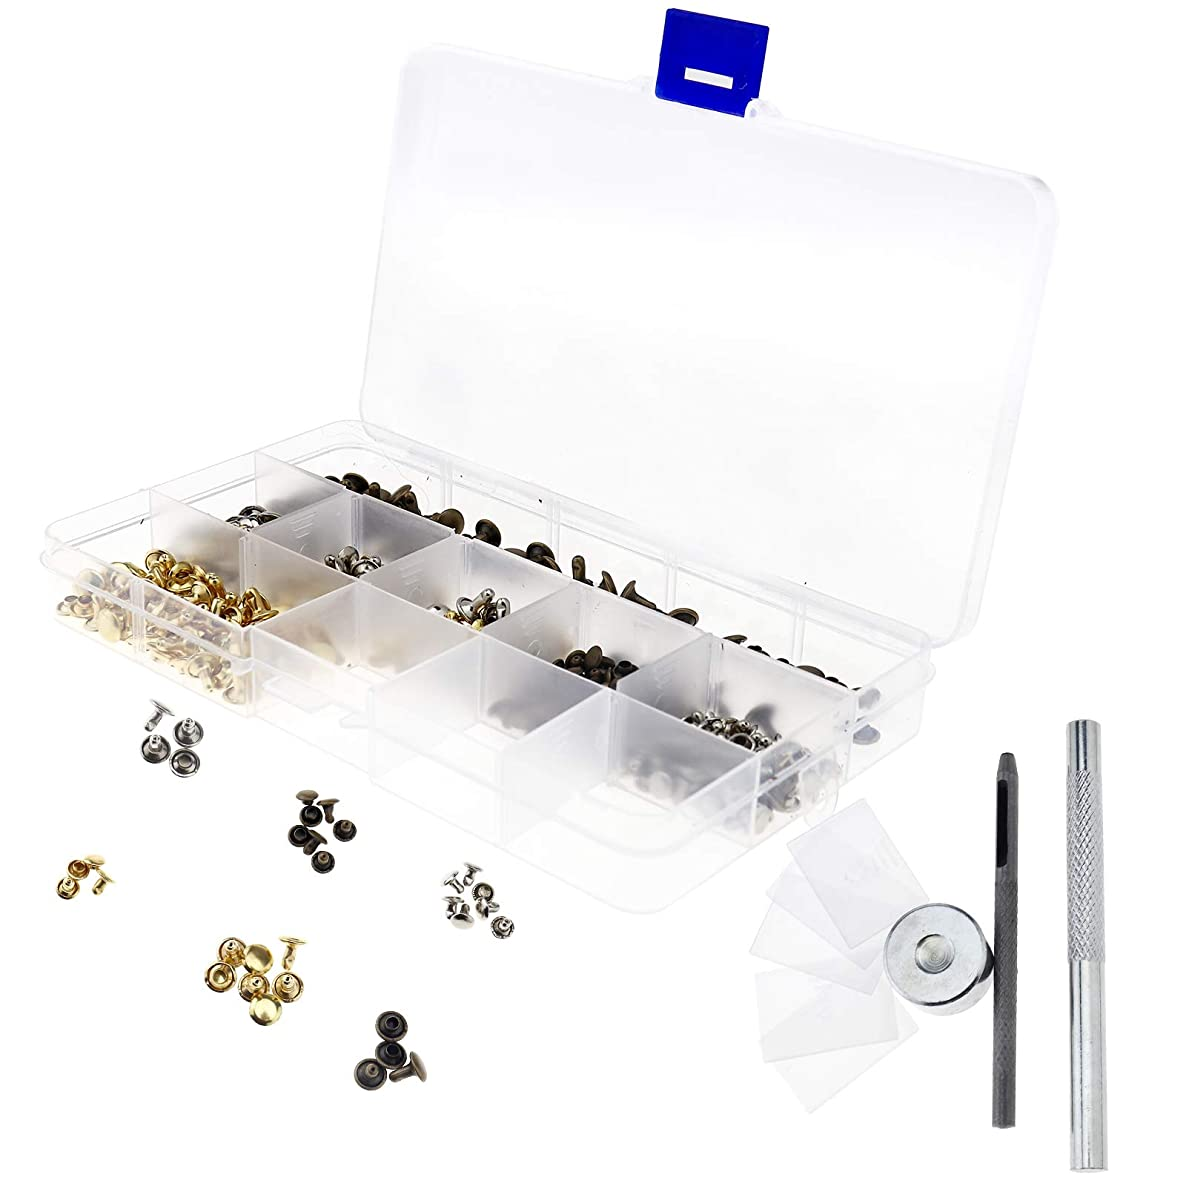 SING F LTD 180pcs/set 2 Sizes 6mm 8mm Double Cap Rivets Bronze Silver Golden Studs for DIY Leather Craft with Storage Box